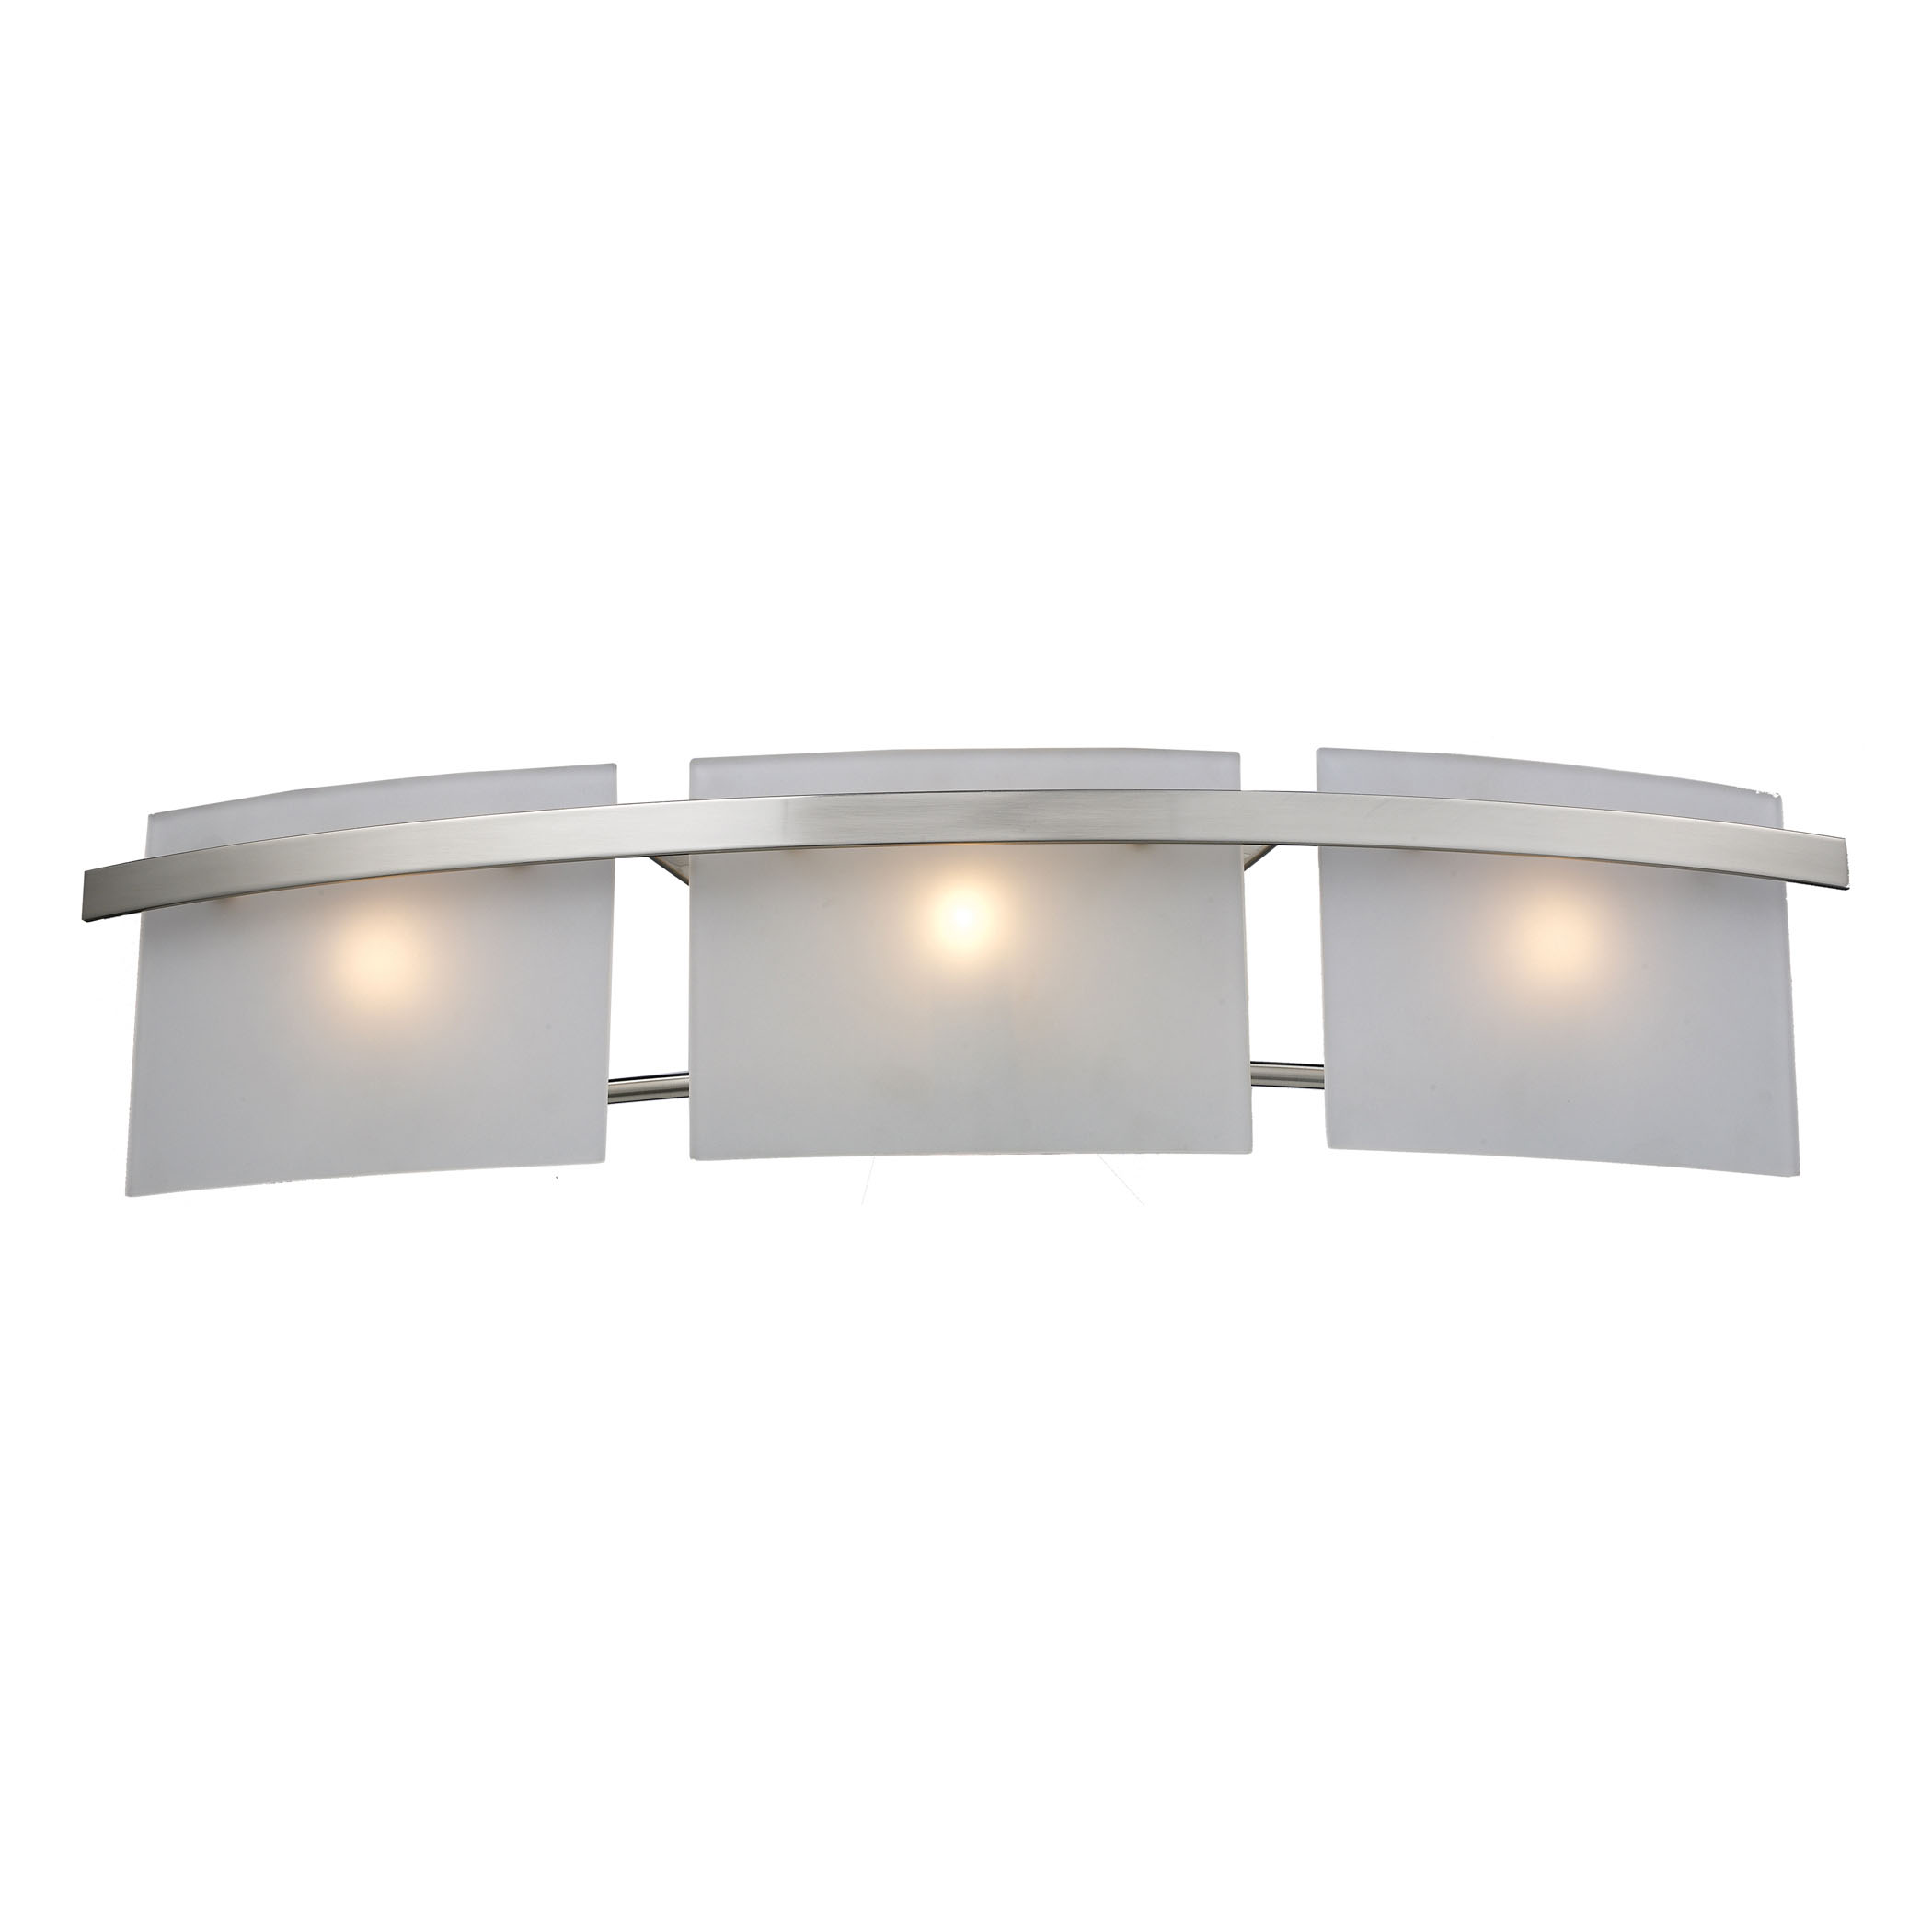 Briston 3-Light WB in Satin Nickel